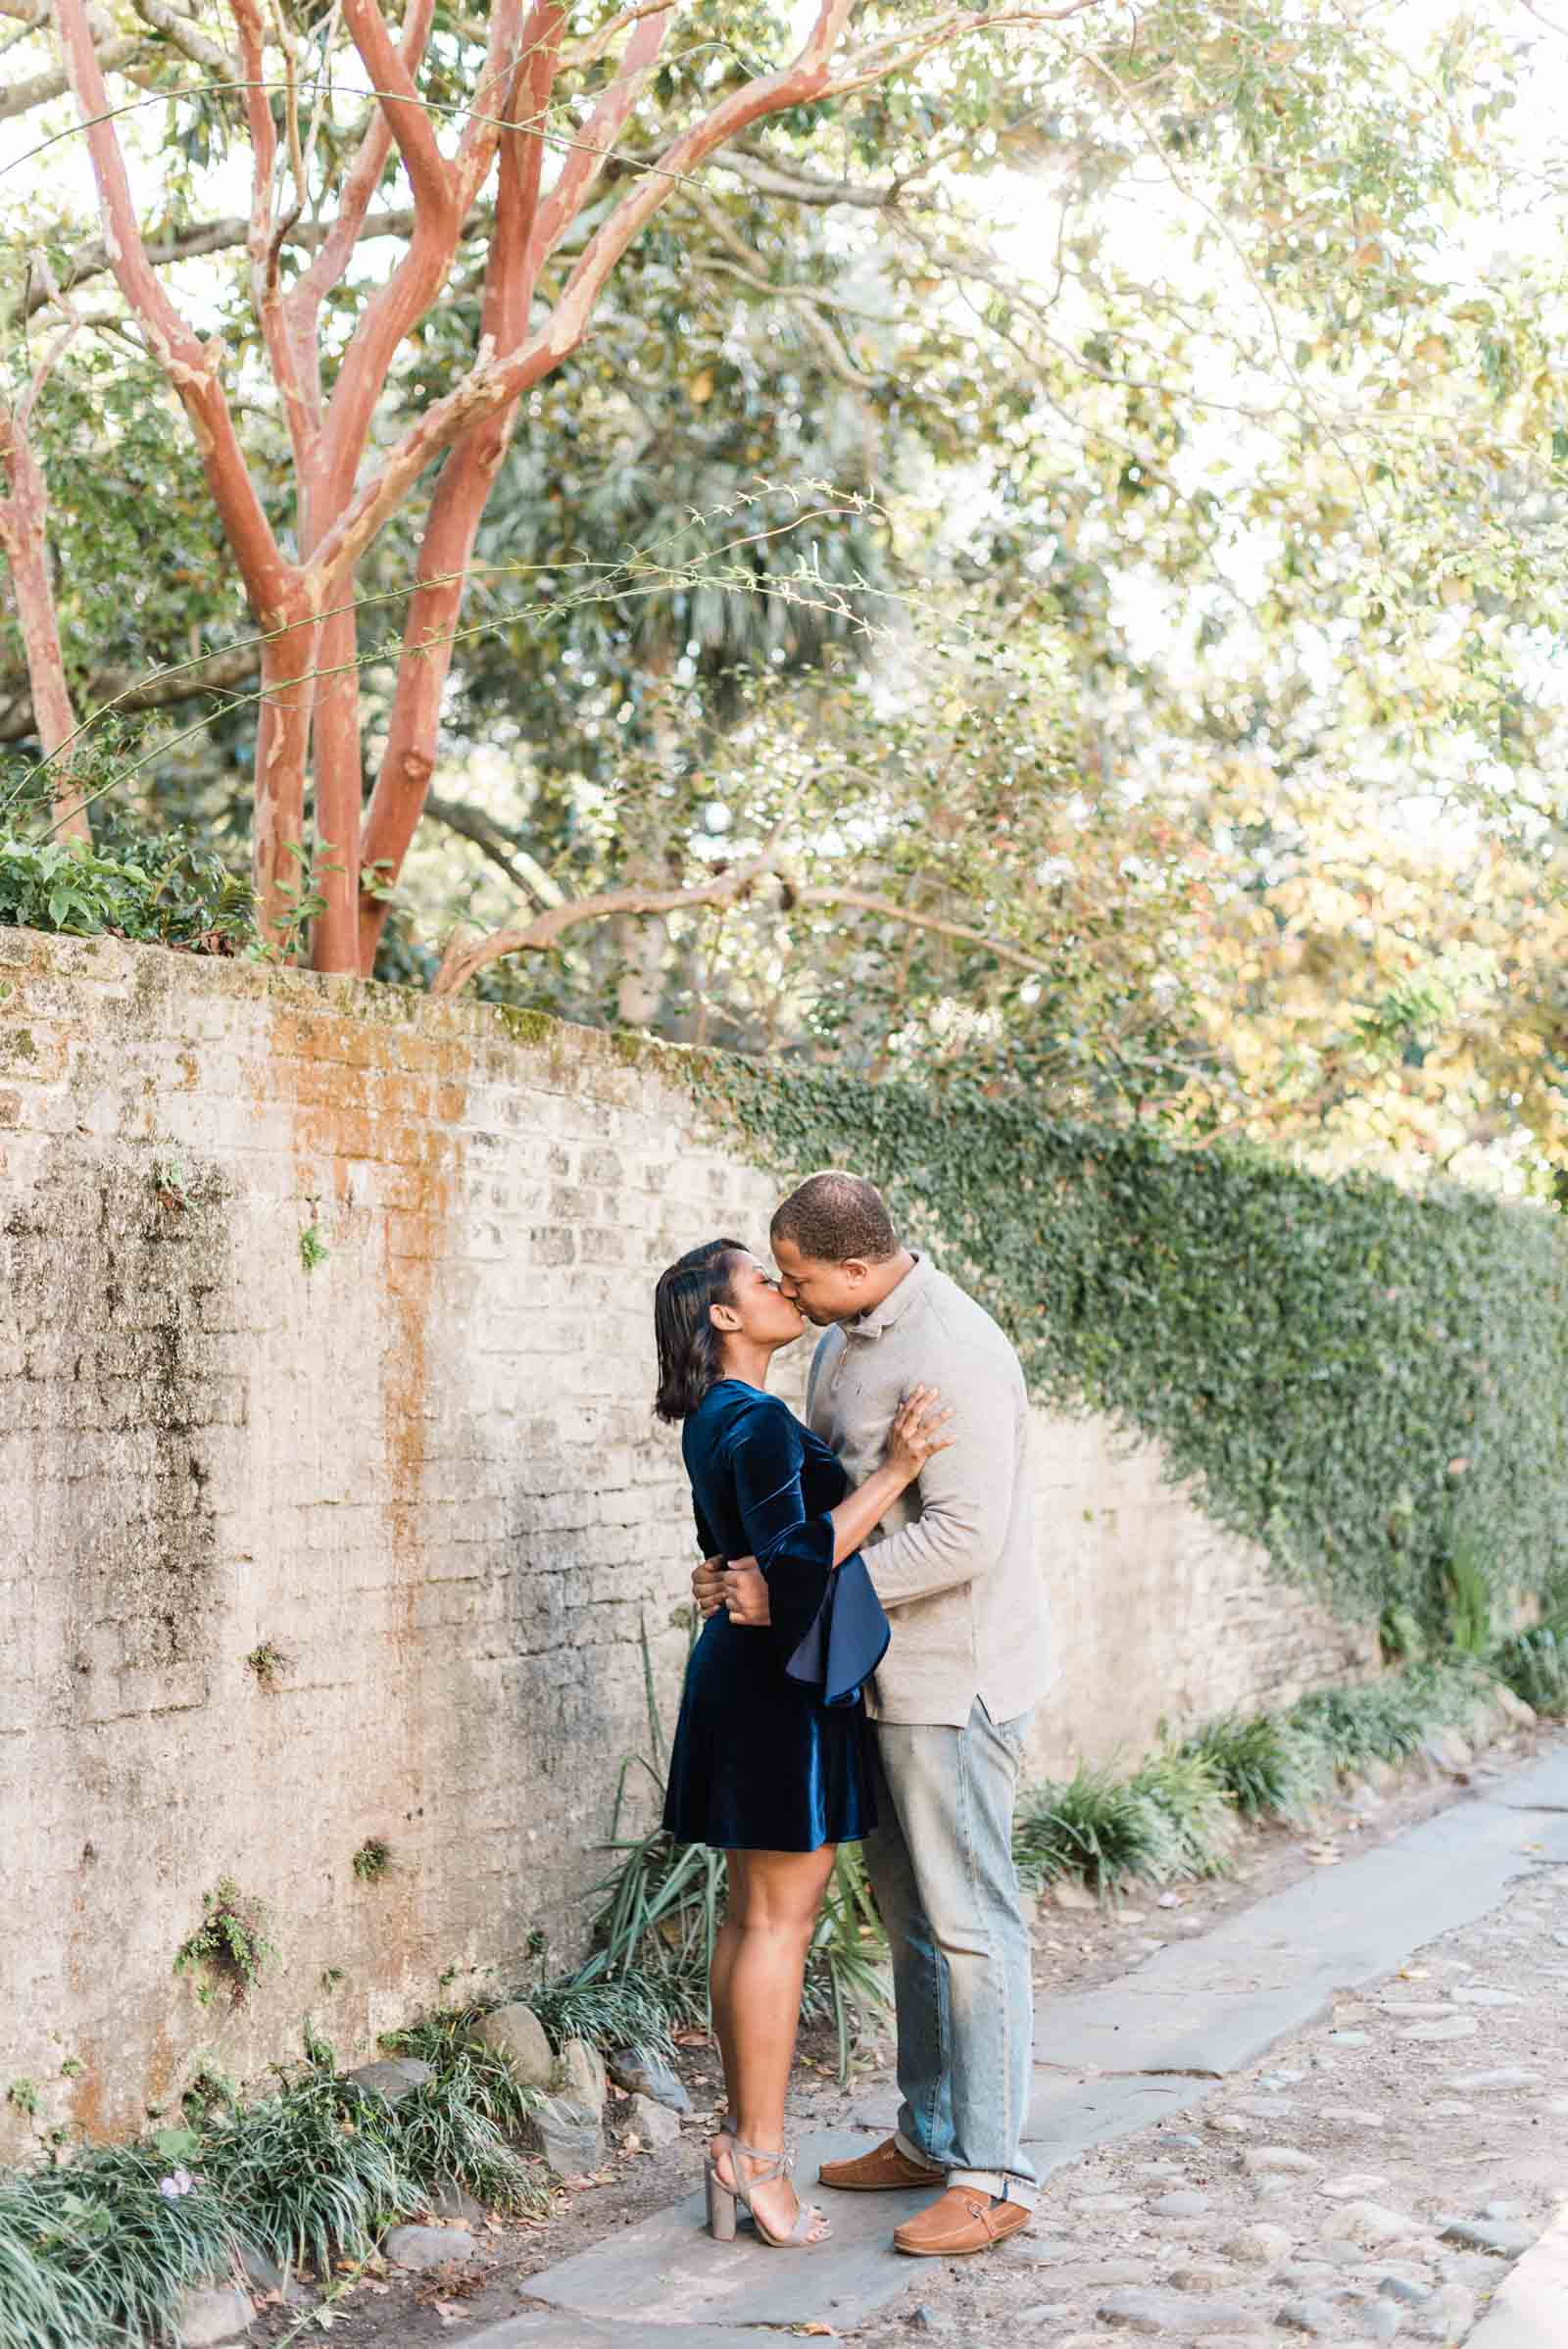 Charleston, SC Engagement Session_Markie Walden Photo-2.jpg